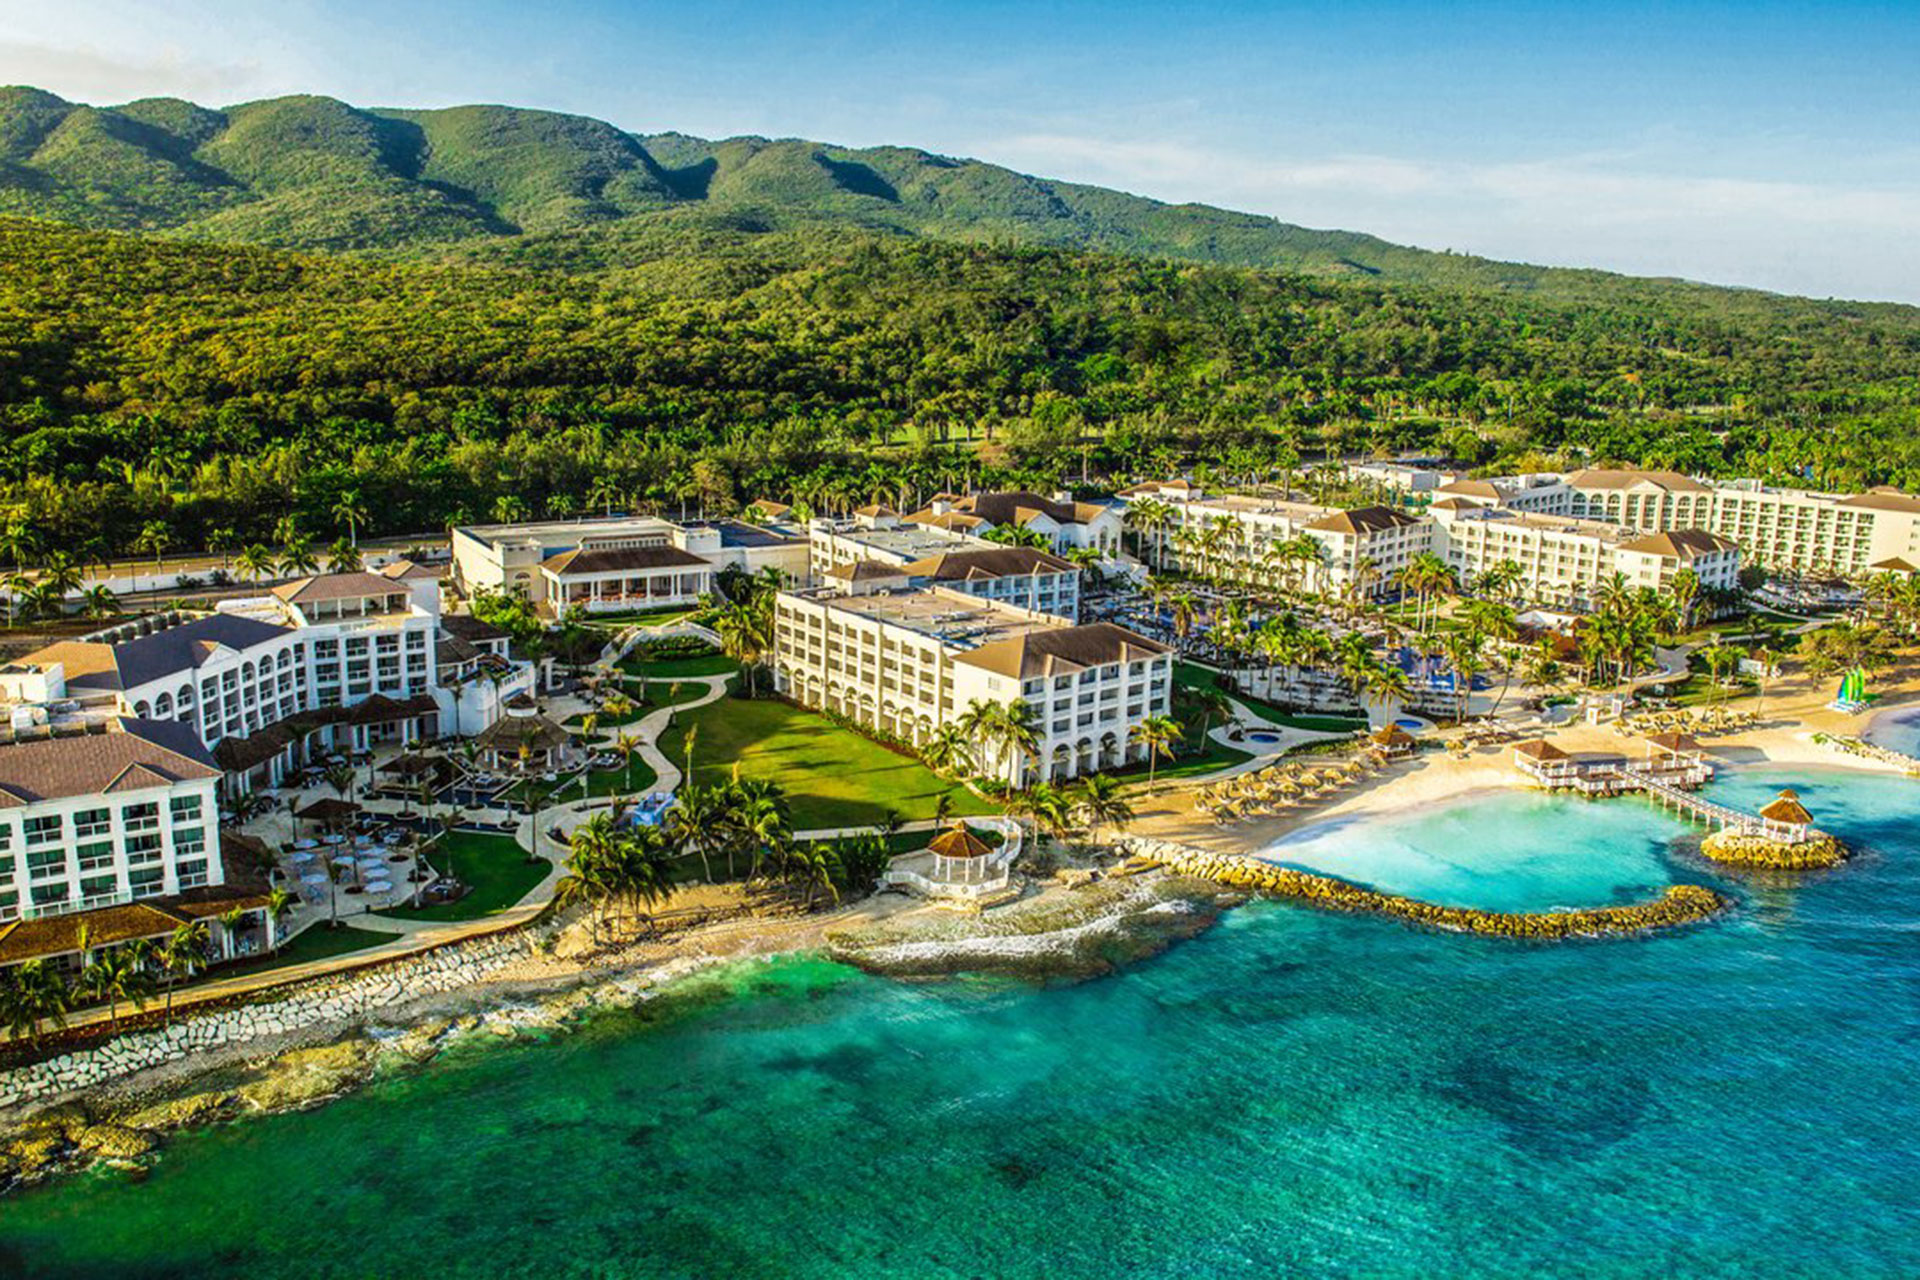 Hyatt Ziva Rose Hall in Jamaica